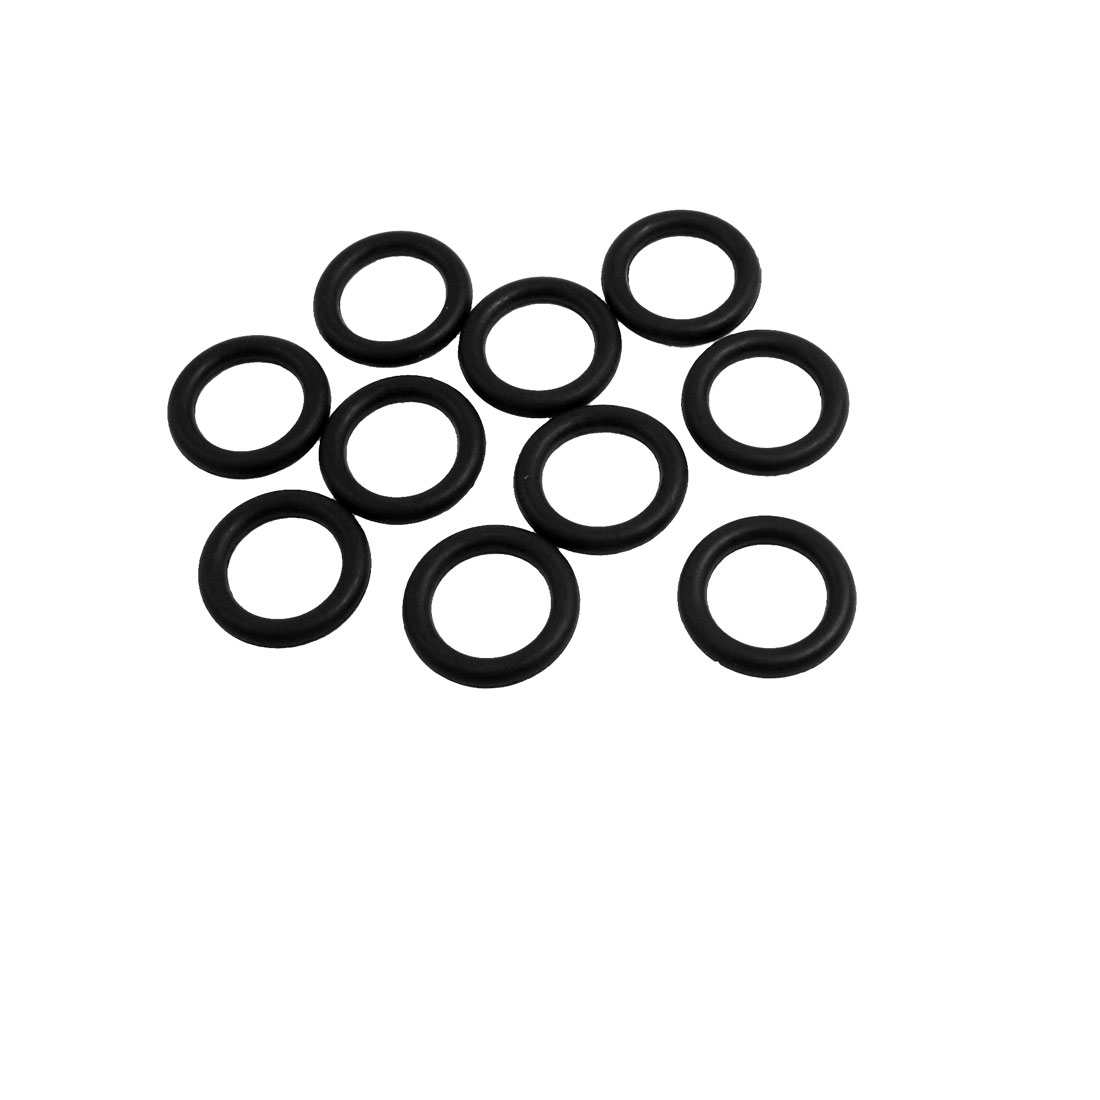 10 Pcs Oil Seal O Rings Black Nitrile Rubber 24mm OD 4mm Thickness